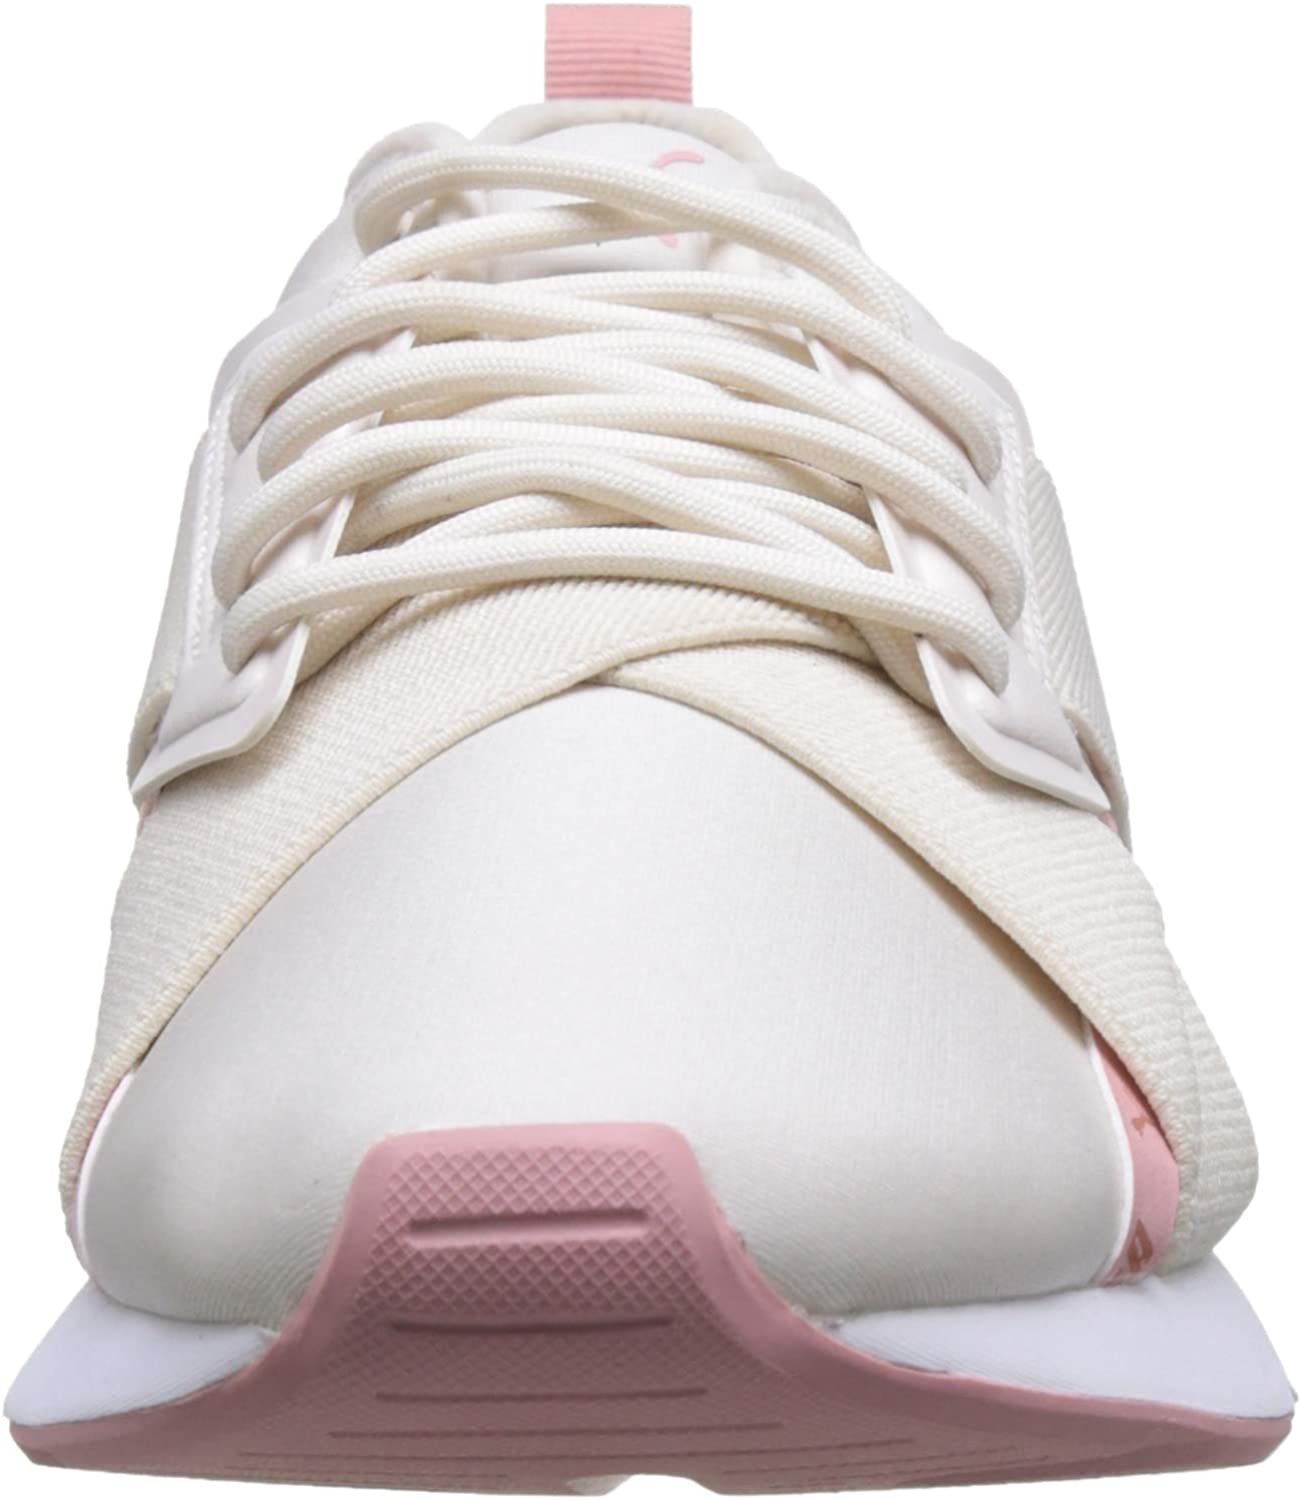 Pastel Parchment-Rose Gold 03 Pink PUMA Womens Low-Top US 8.5